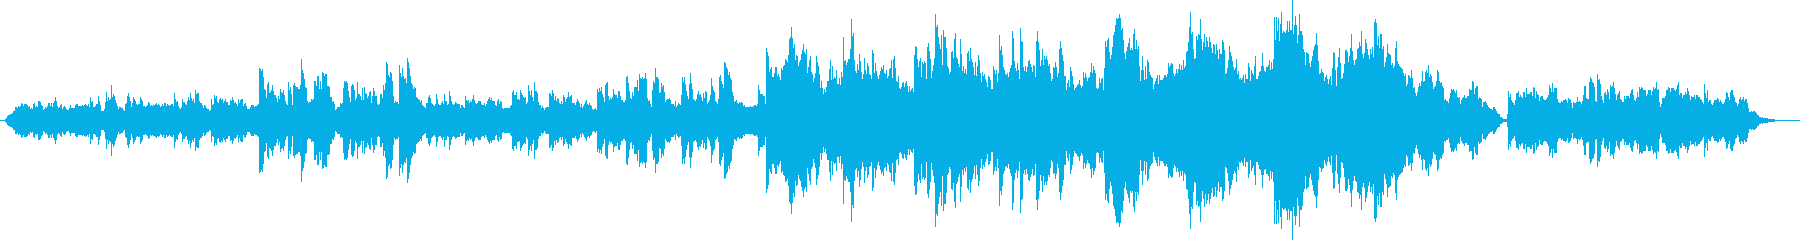 Happiness played by a harp chord's reproduced waveform